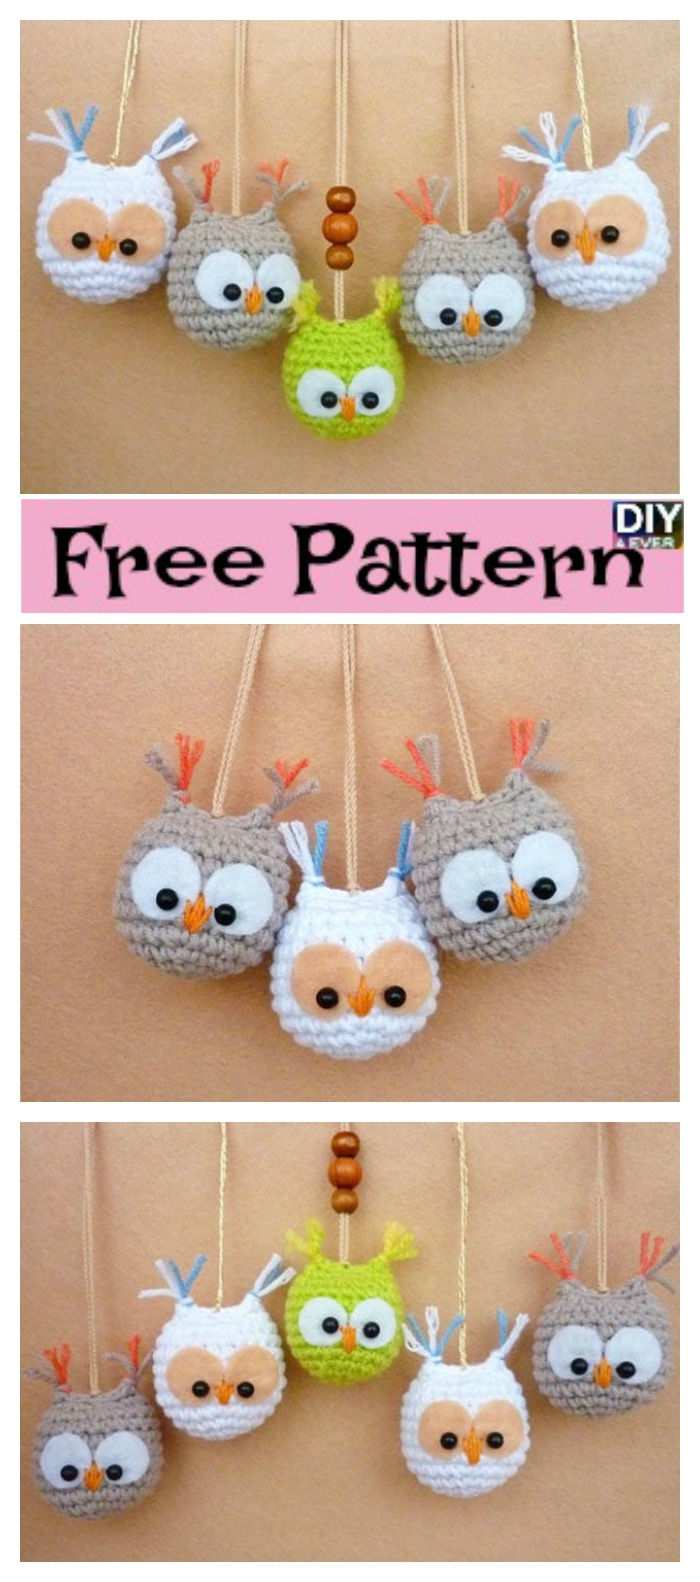 diy4ever- Crochet Owl Keychain - Free Pattern